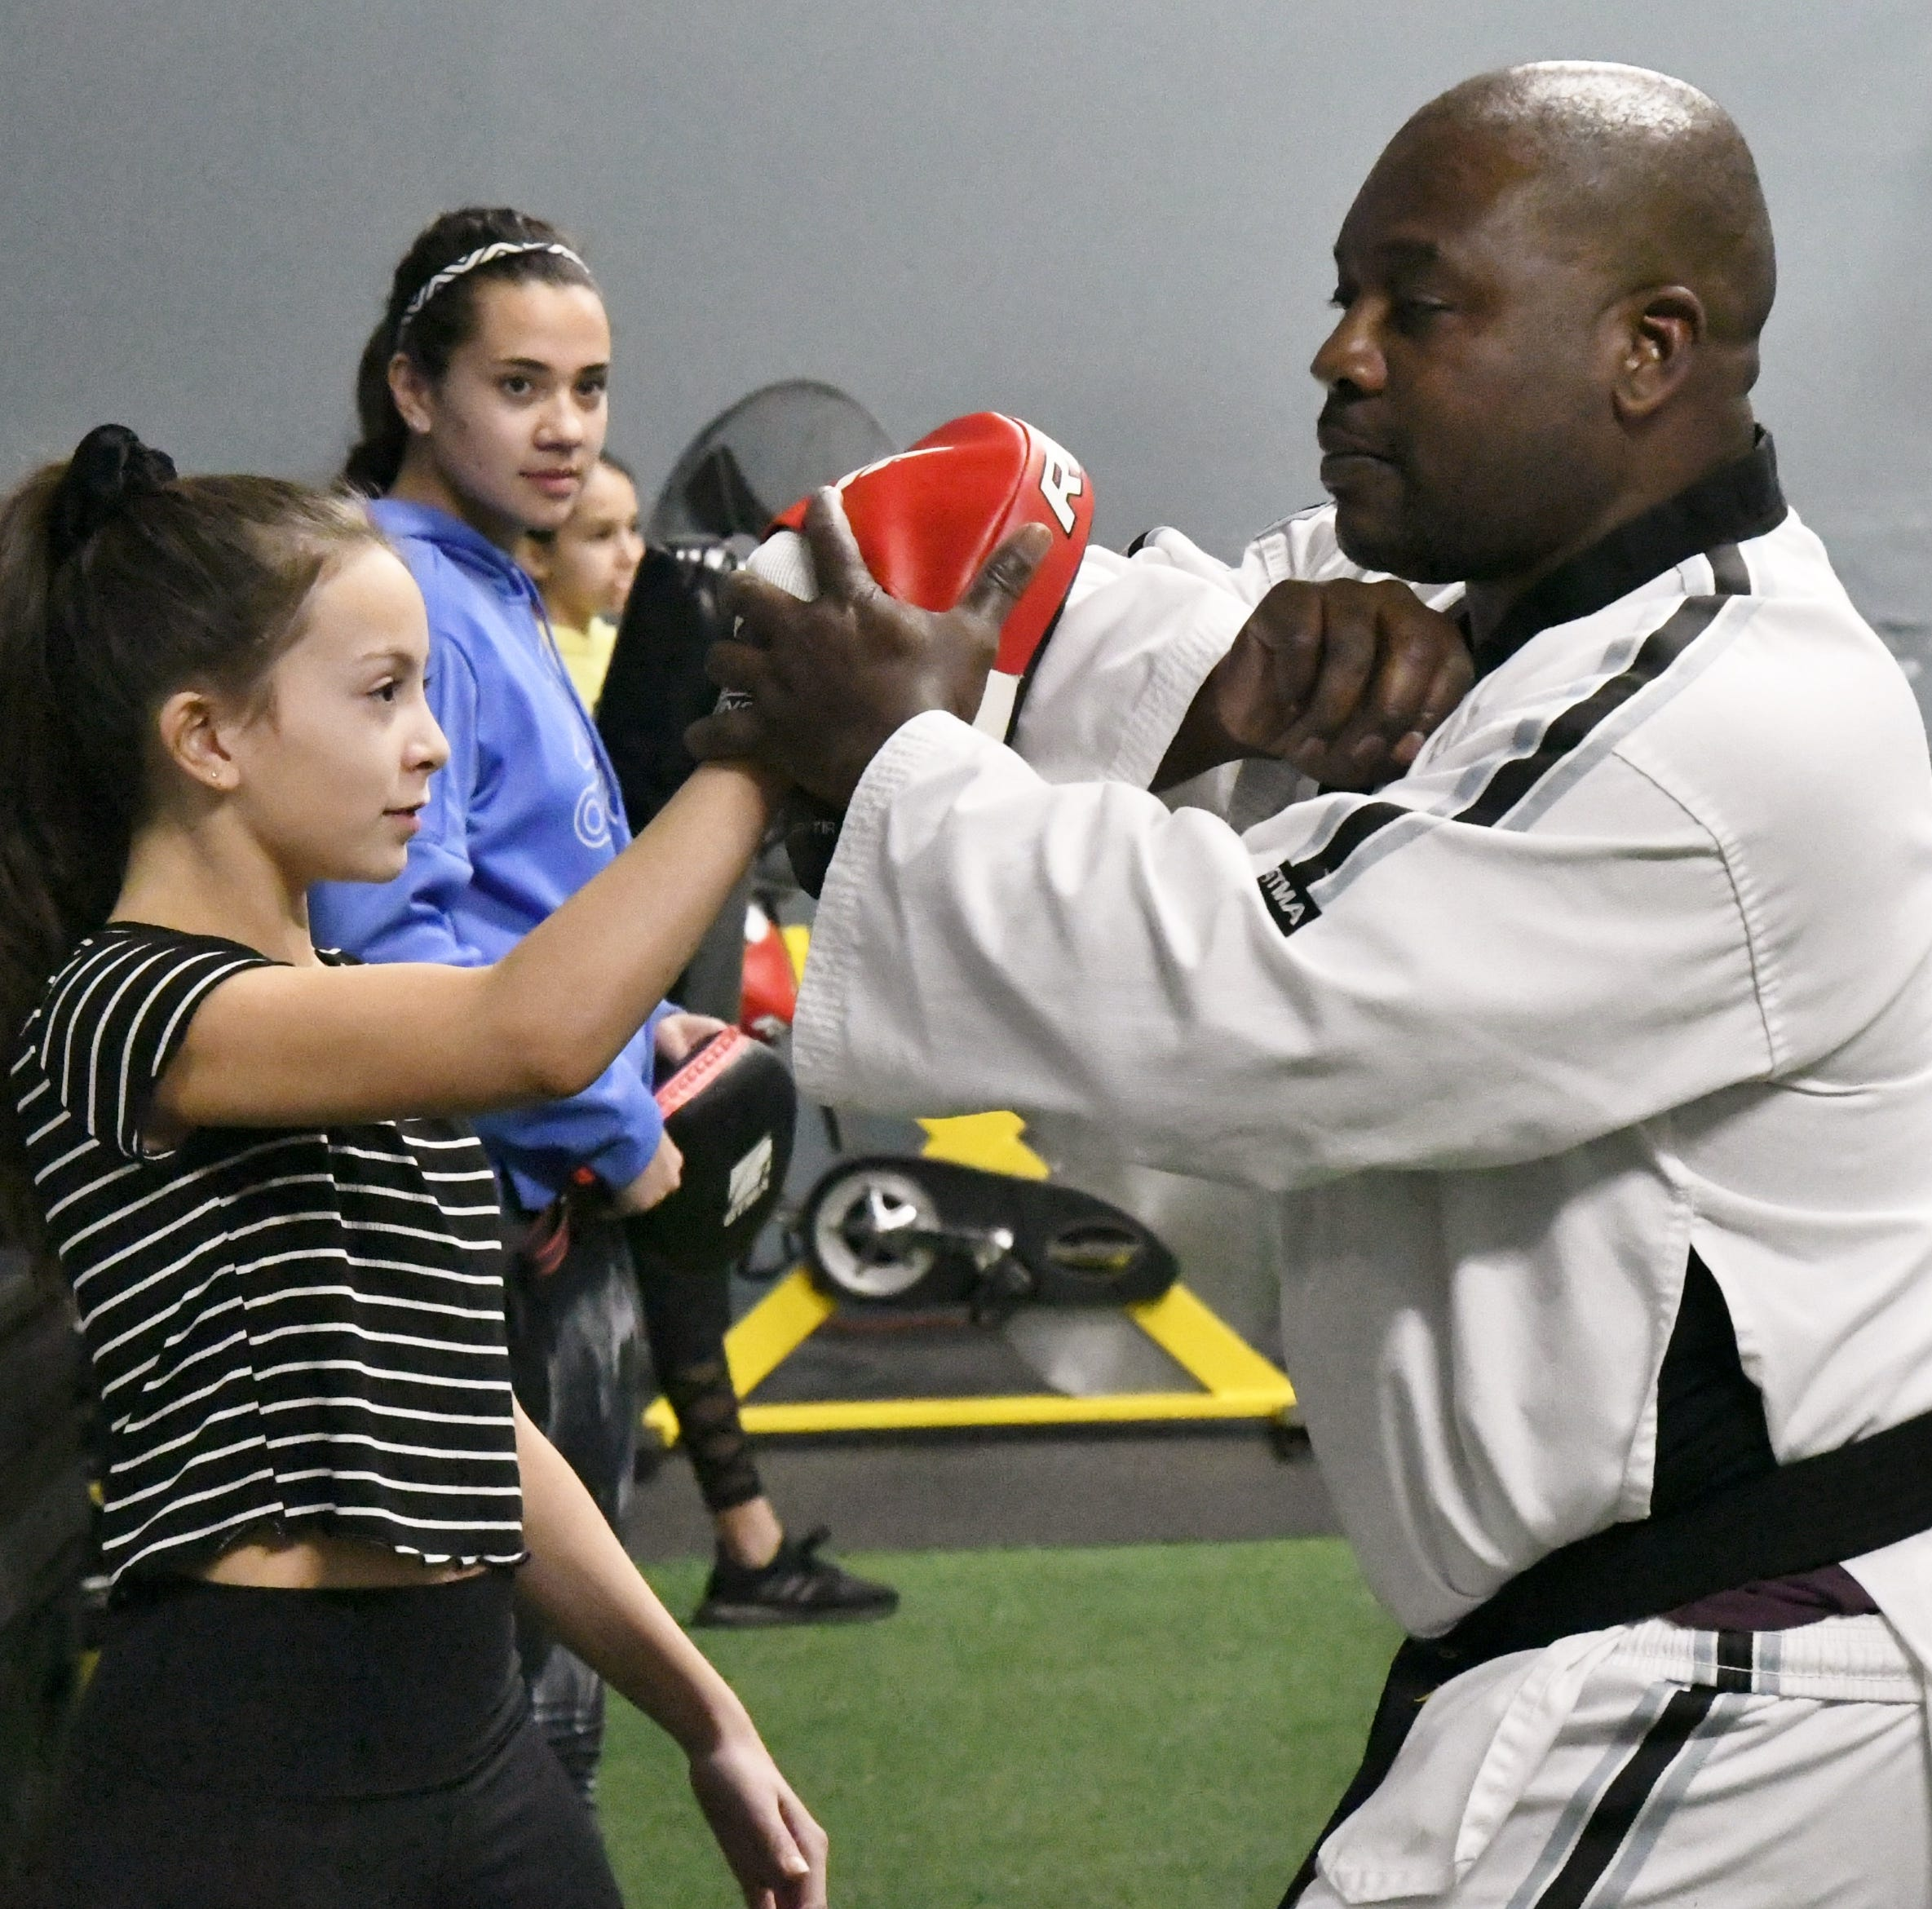 Dads and daughters self-defense course a knockout